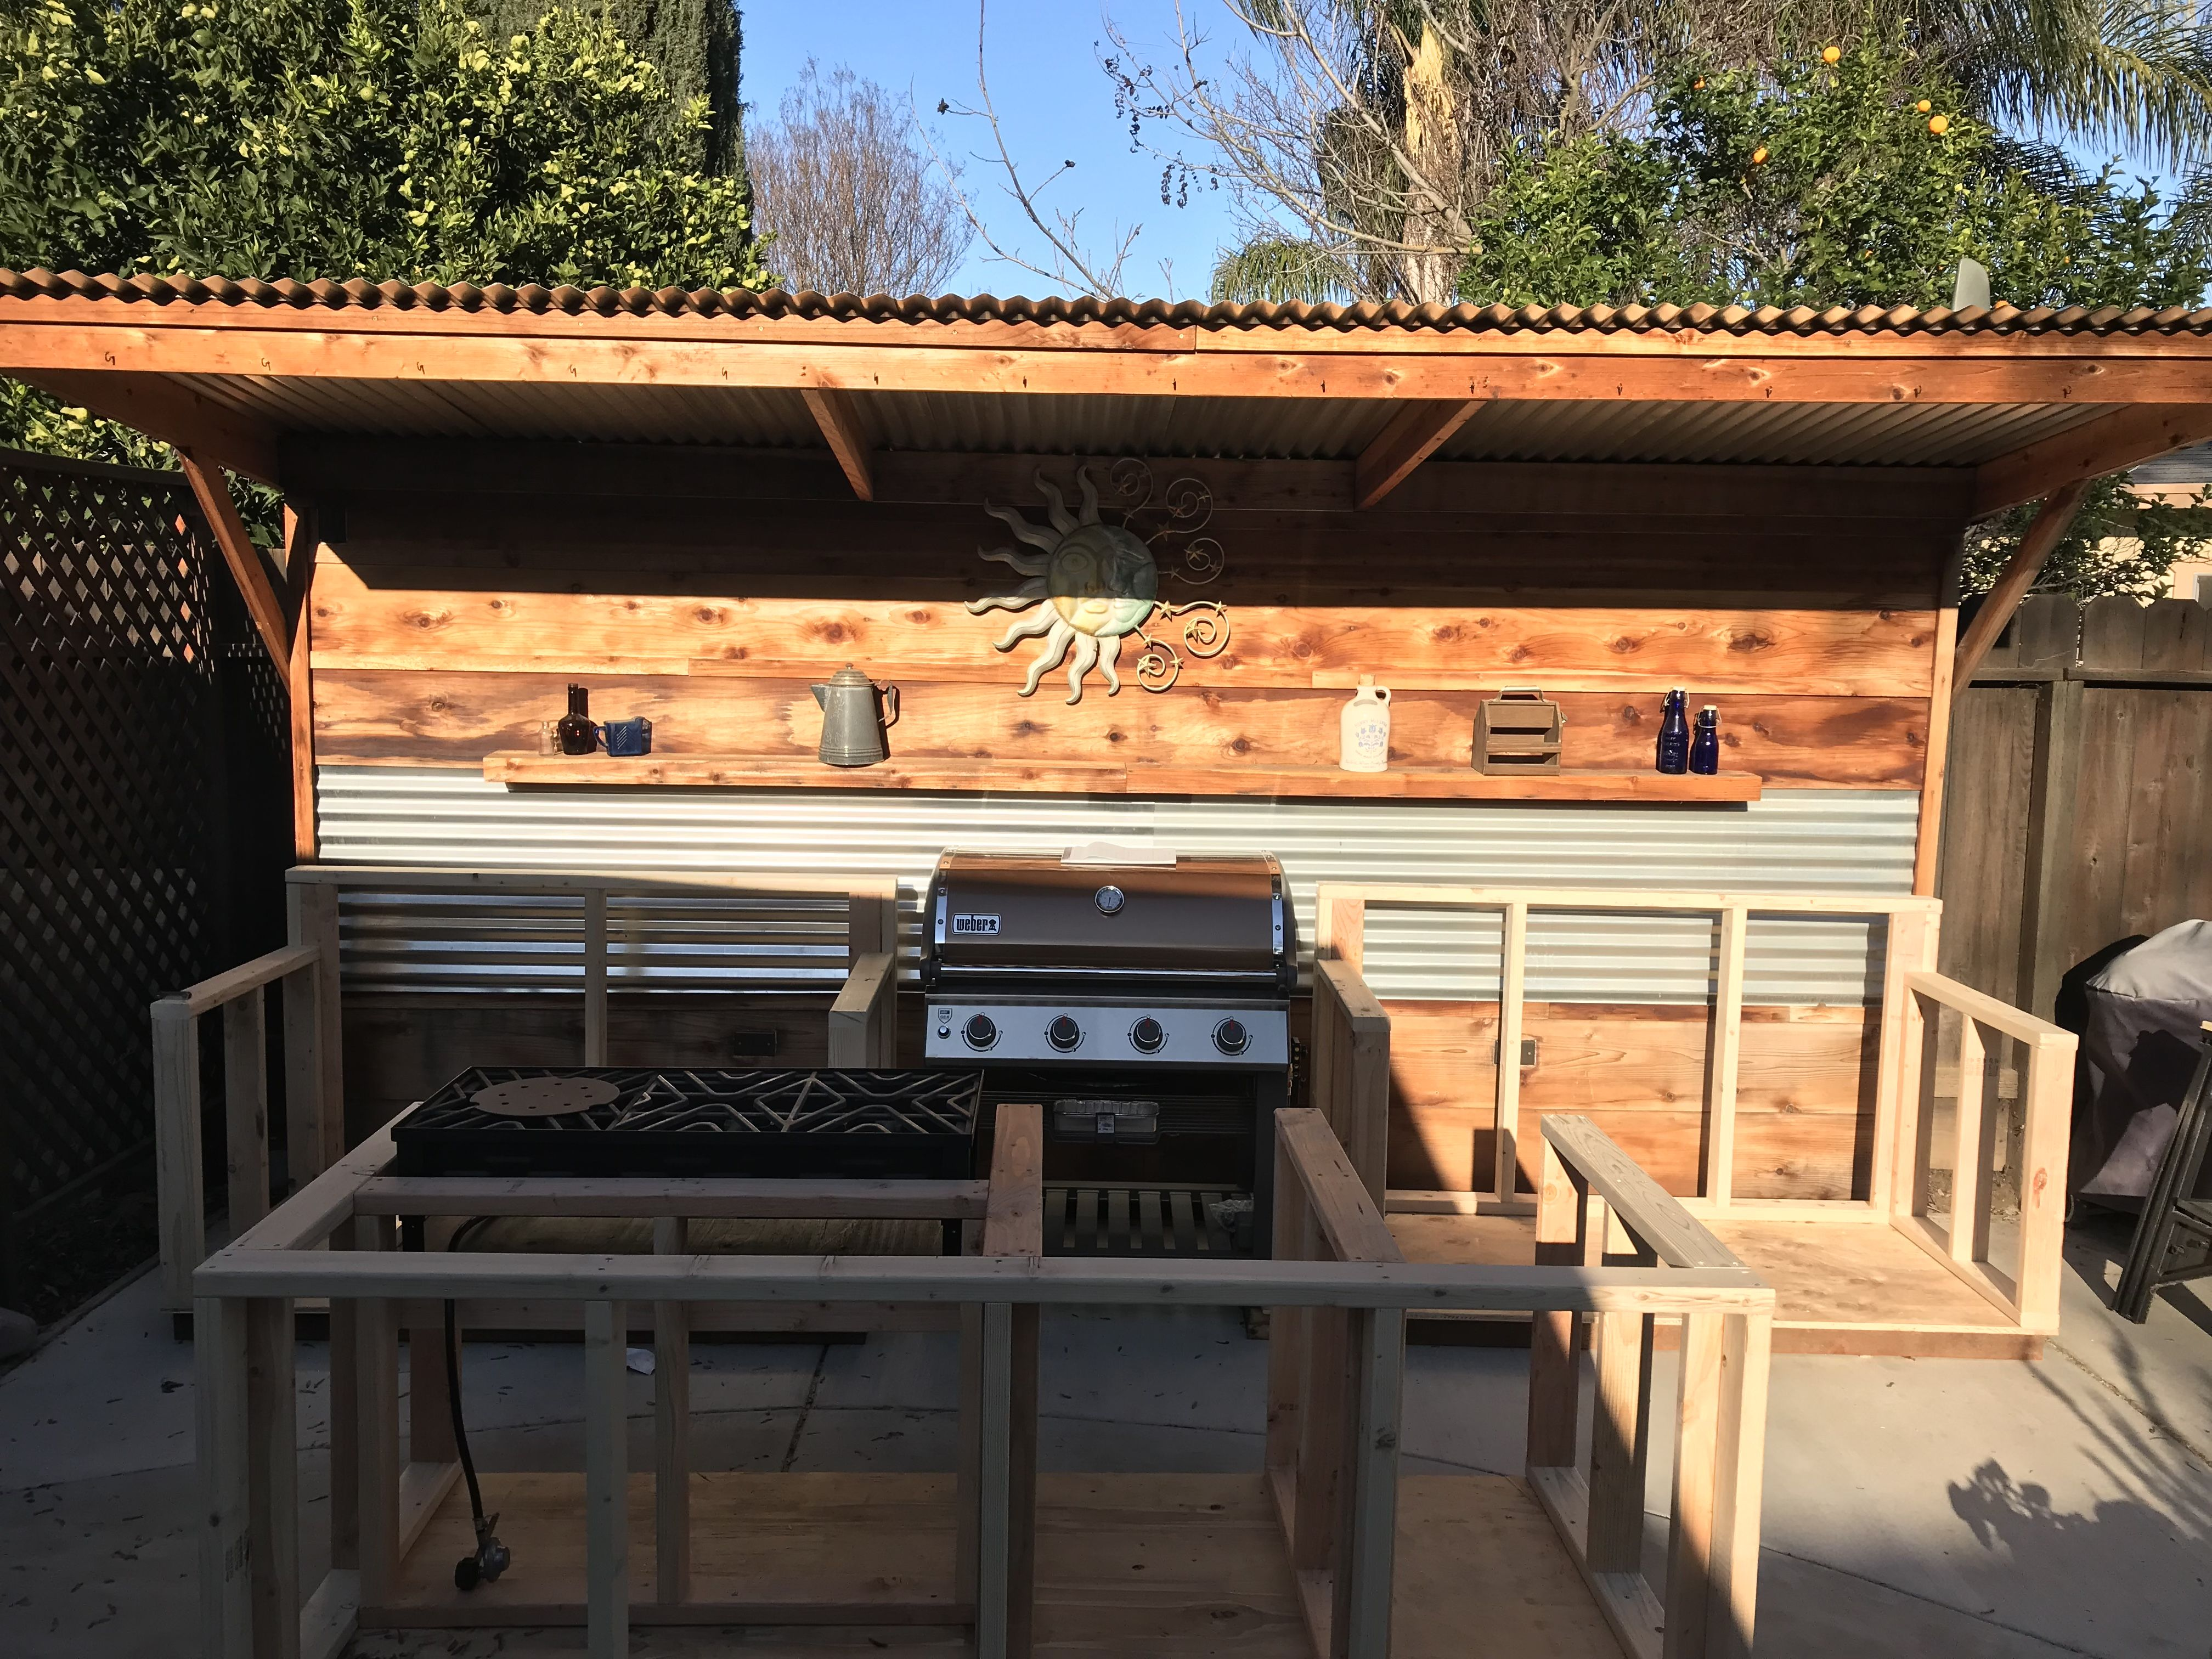 Day 3 Of My Outdoor Kitchen Build Is Over My Body Too Finished The Framework For The Island And My Three Burner S Outdoor Kitchen Burner Stove Outdoor Decor